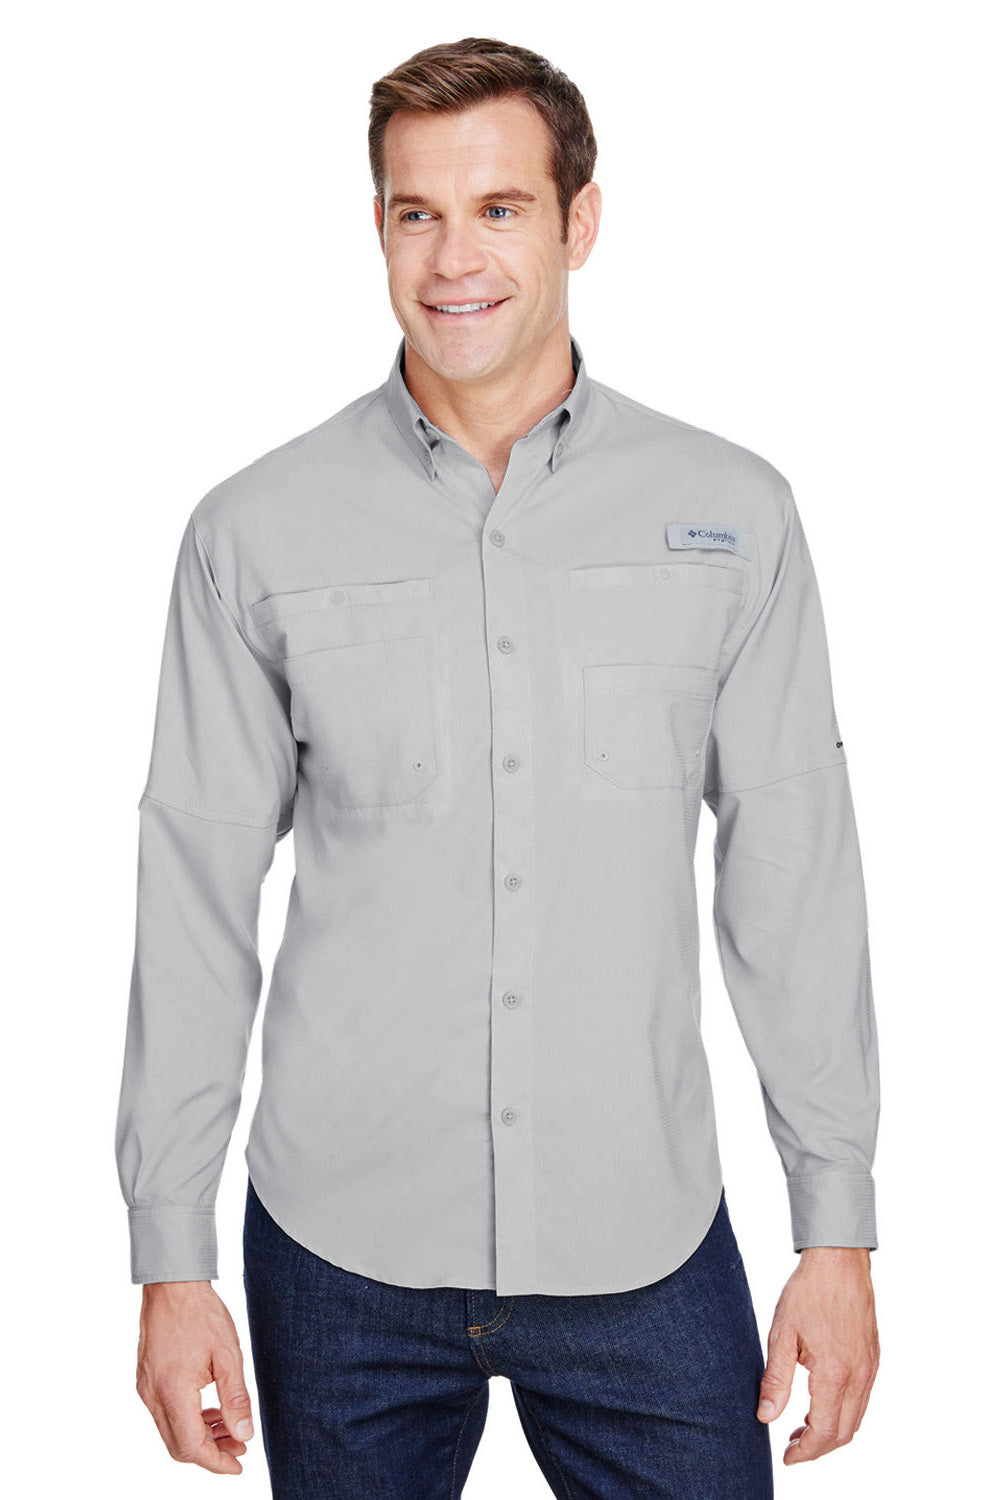 Columbia 7253 Tamiami II Moisture Wicking Long Sleeve Button Down Shirt w/ Double Pockets Cool Grey Front